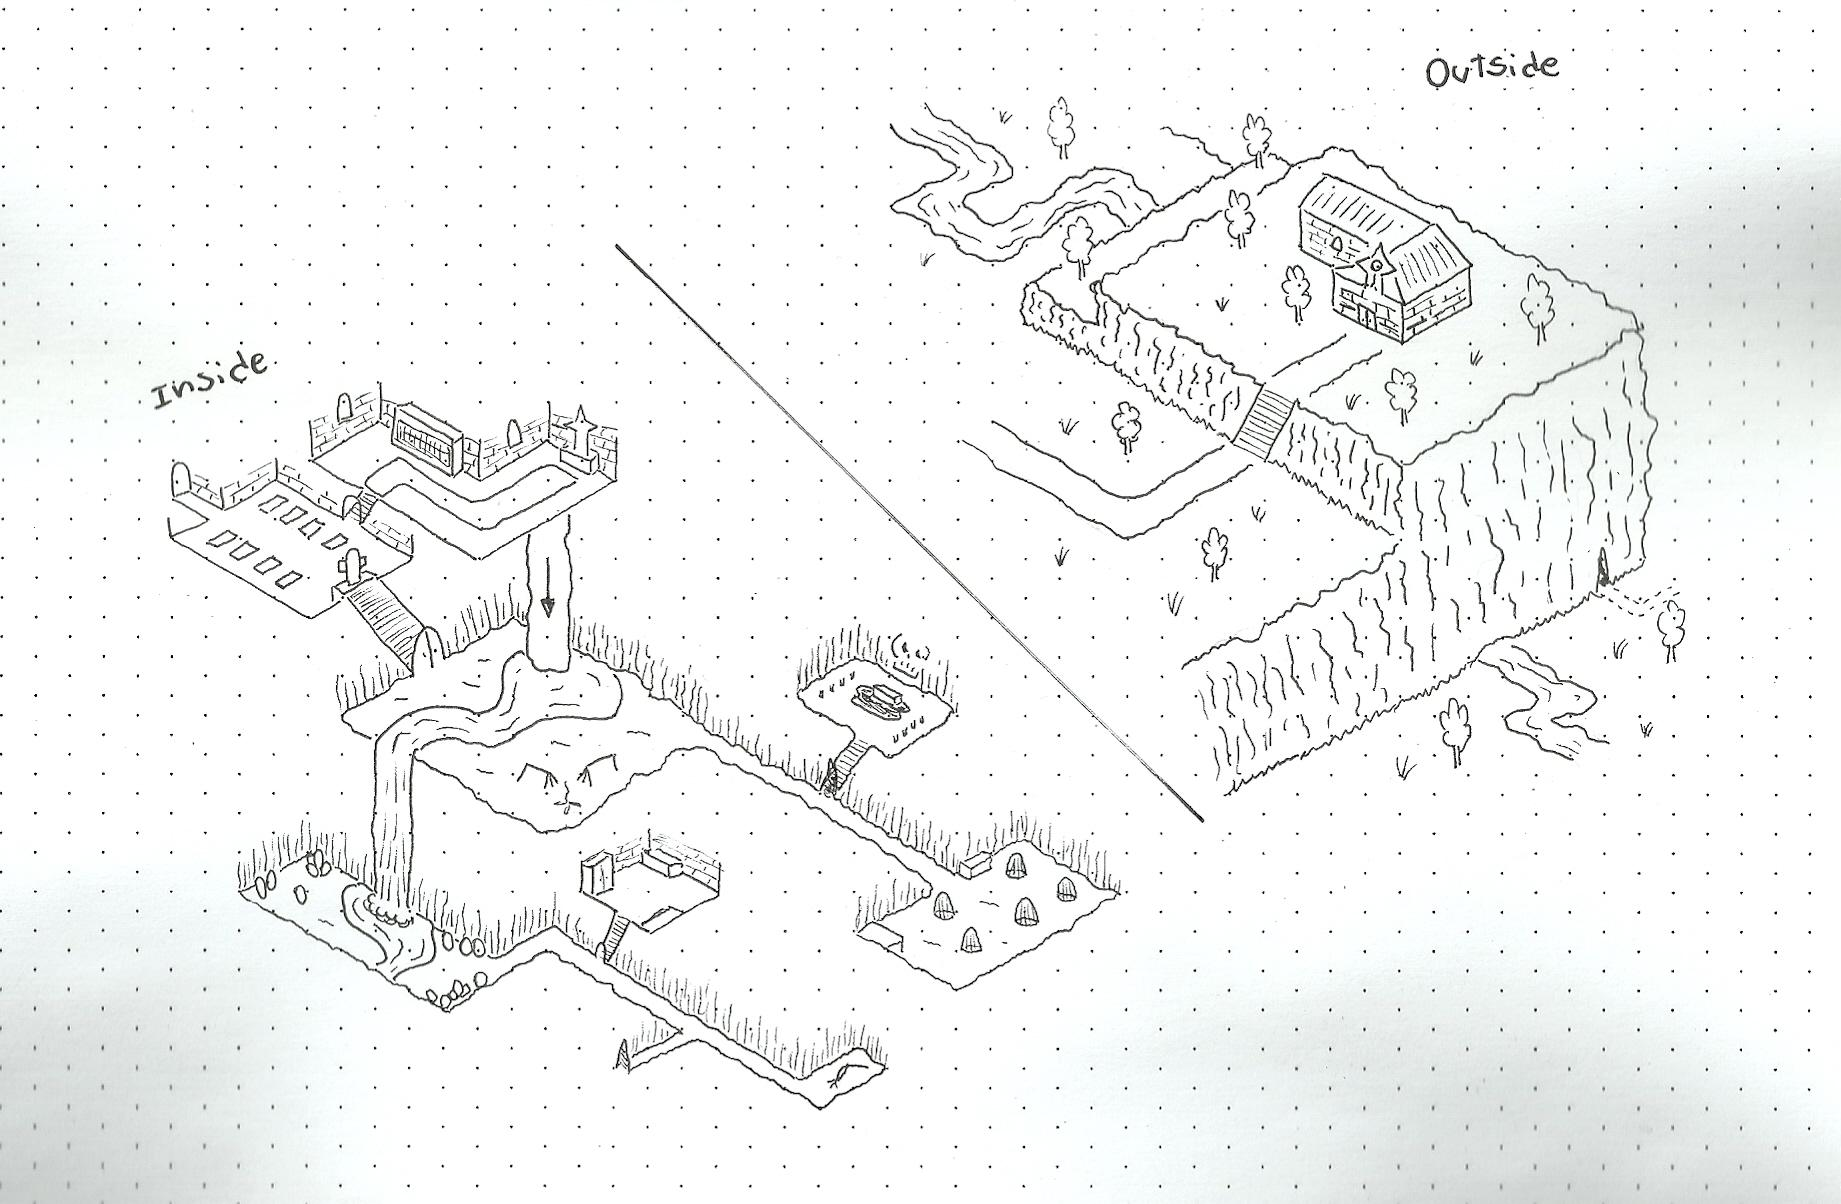 Drawn torch isometric #10